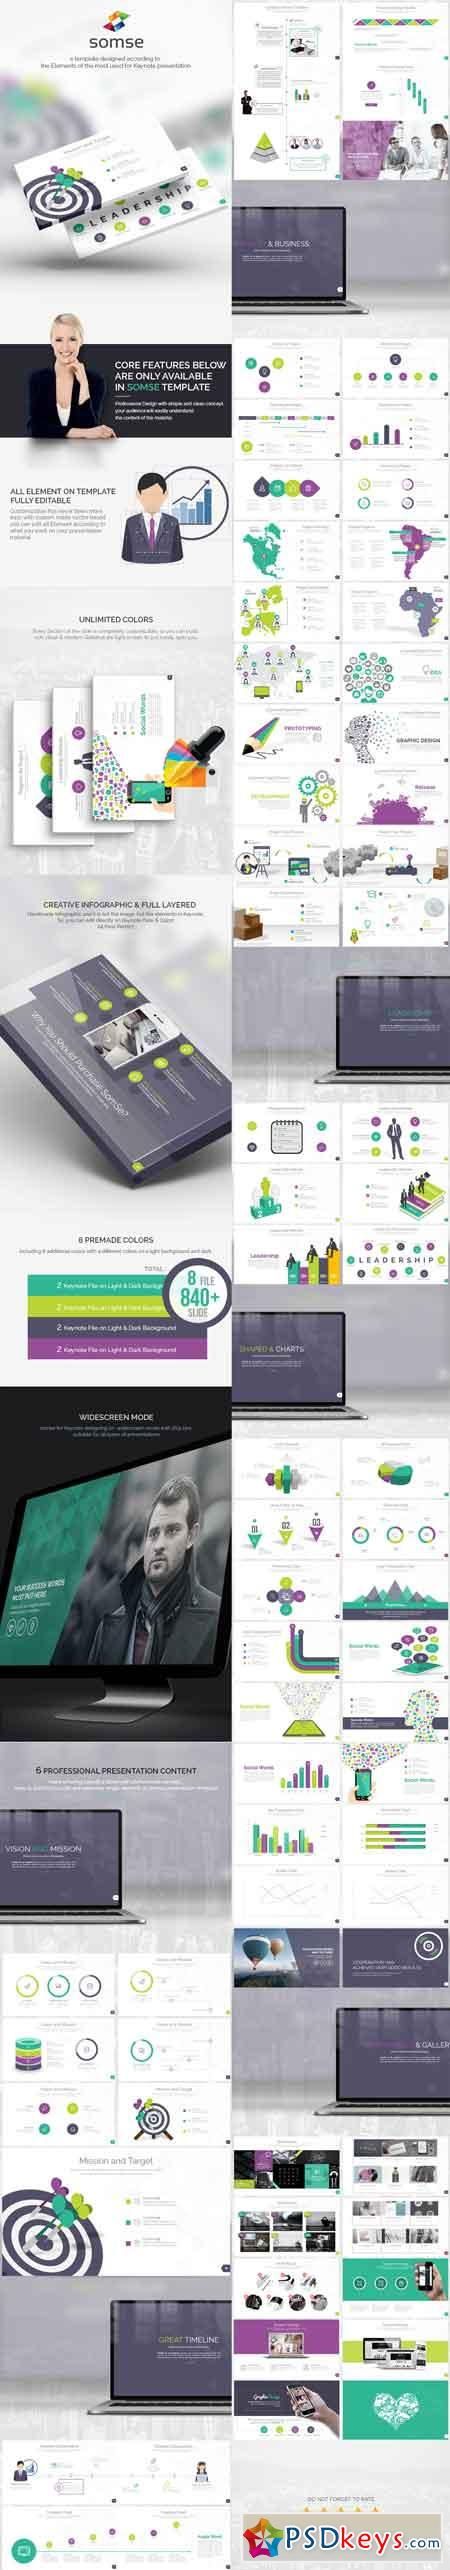 Somse - All in One Keynote Template 8893880